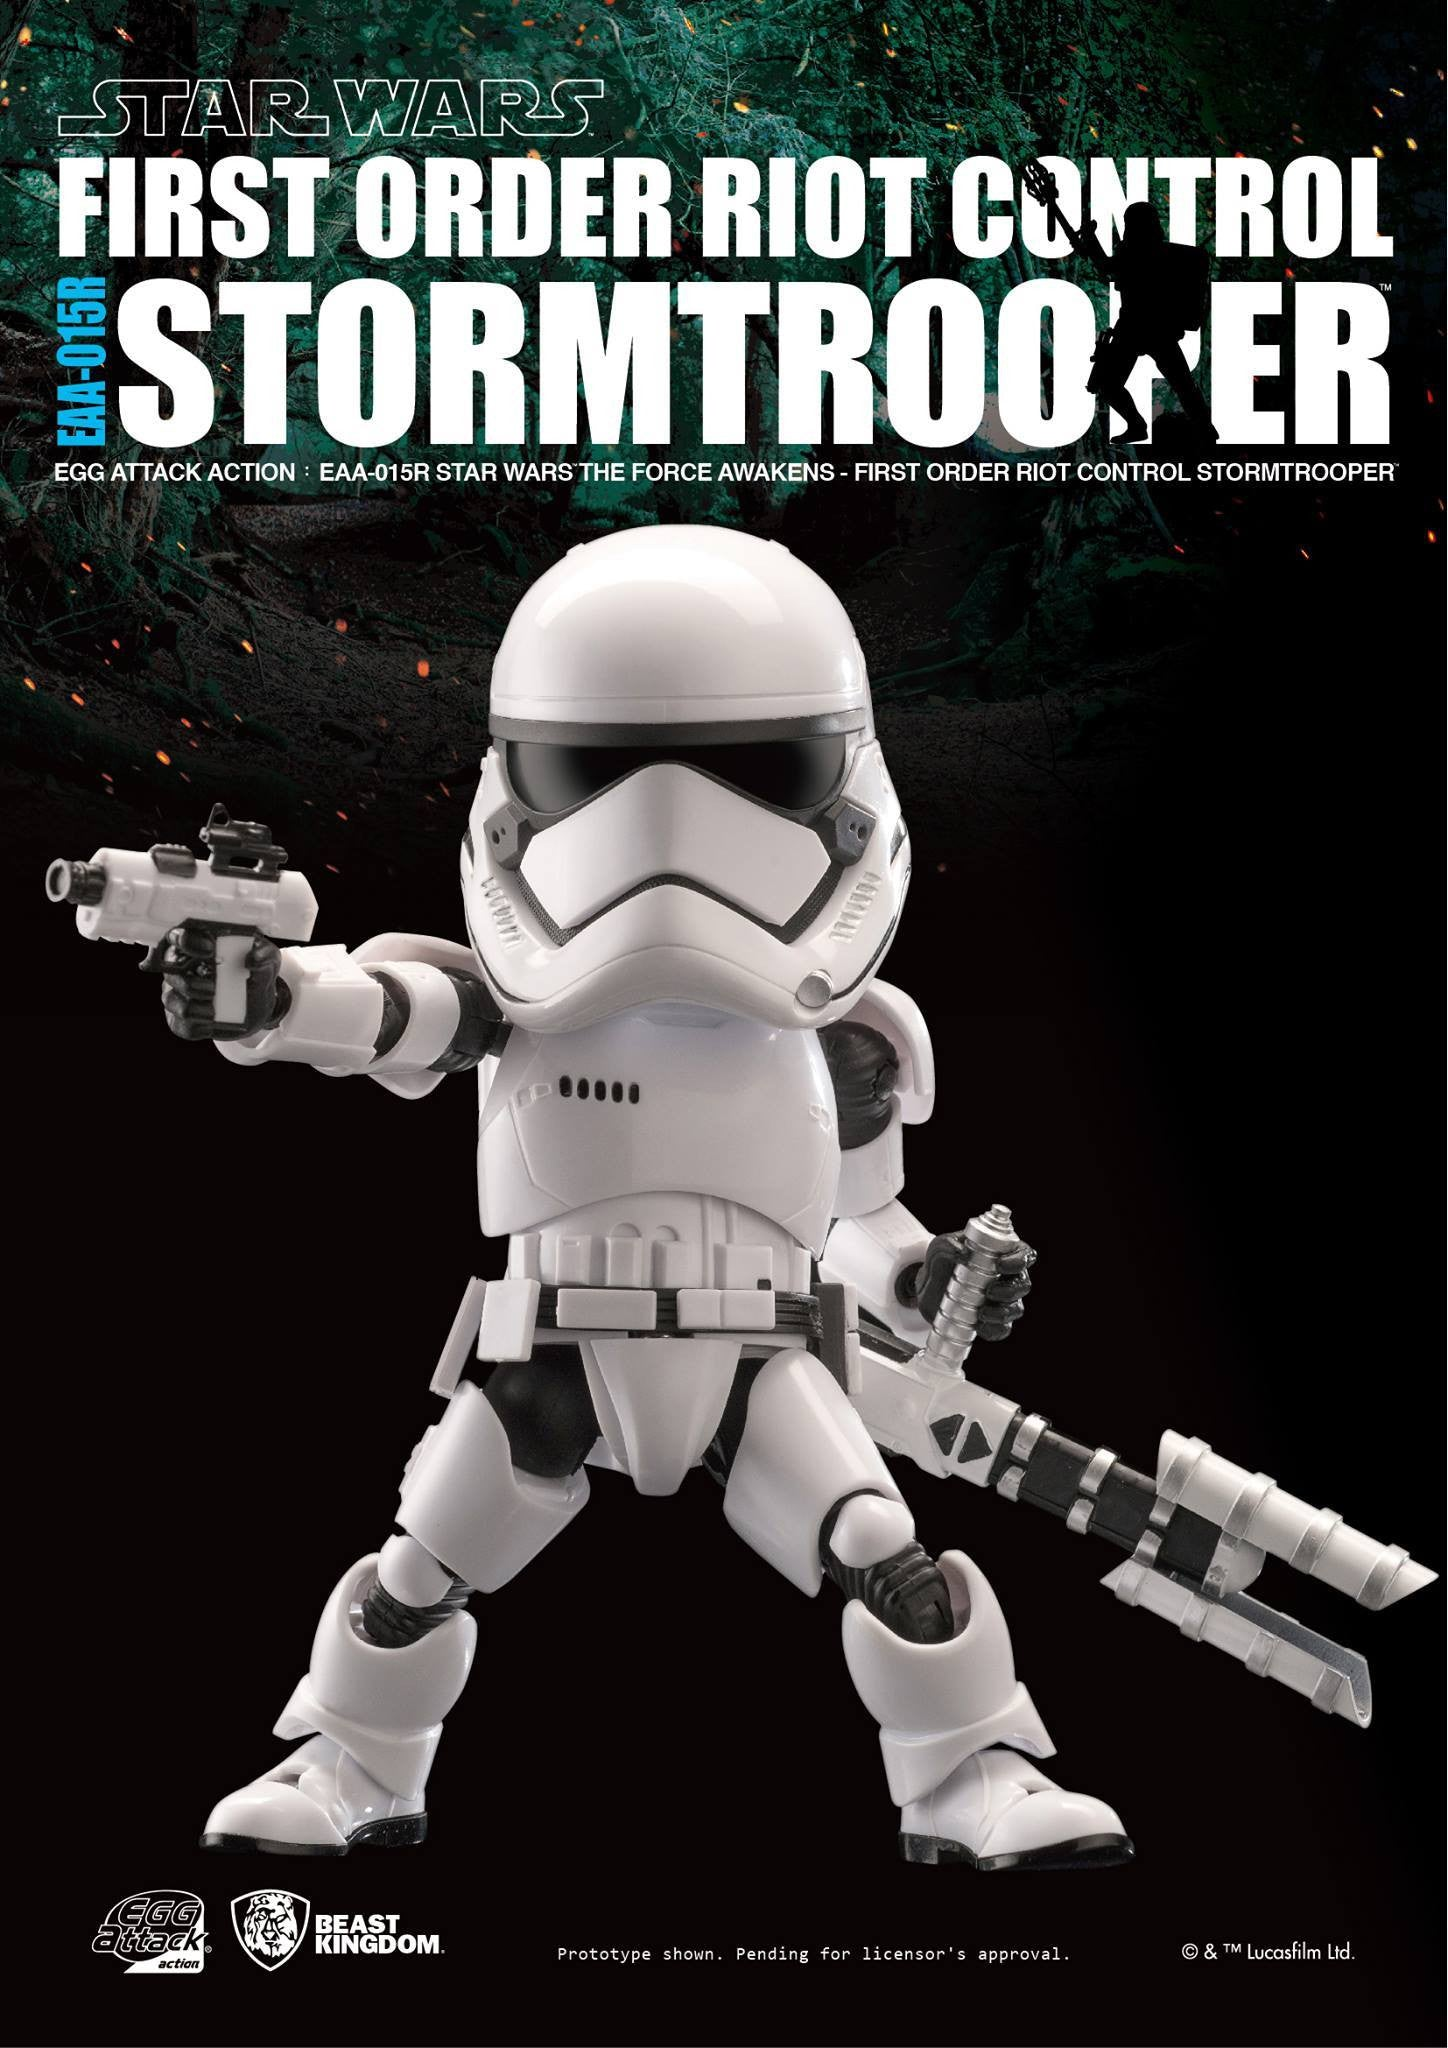 Egg Attack Action - Star Wars: The Force Awakens - EAA-015R Riot Control Stormtrooper - Marvelous Toys - 3